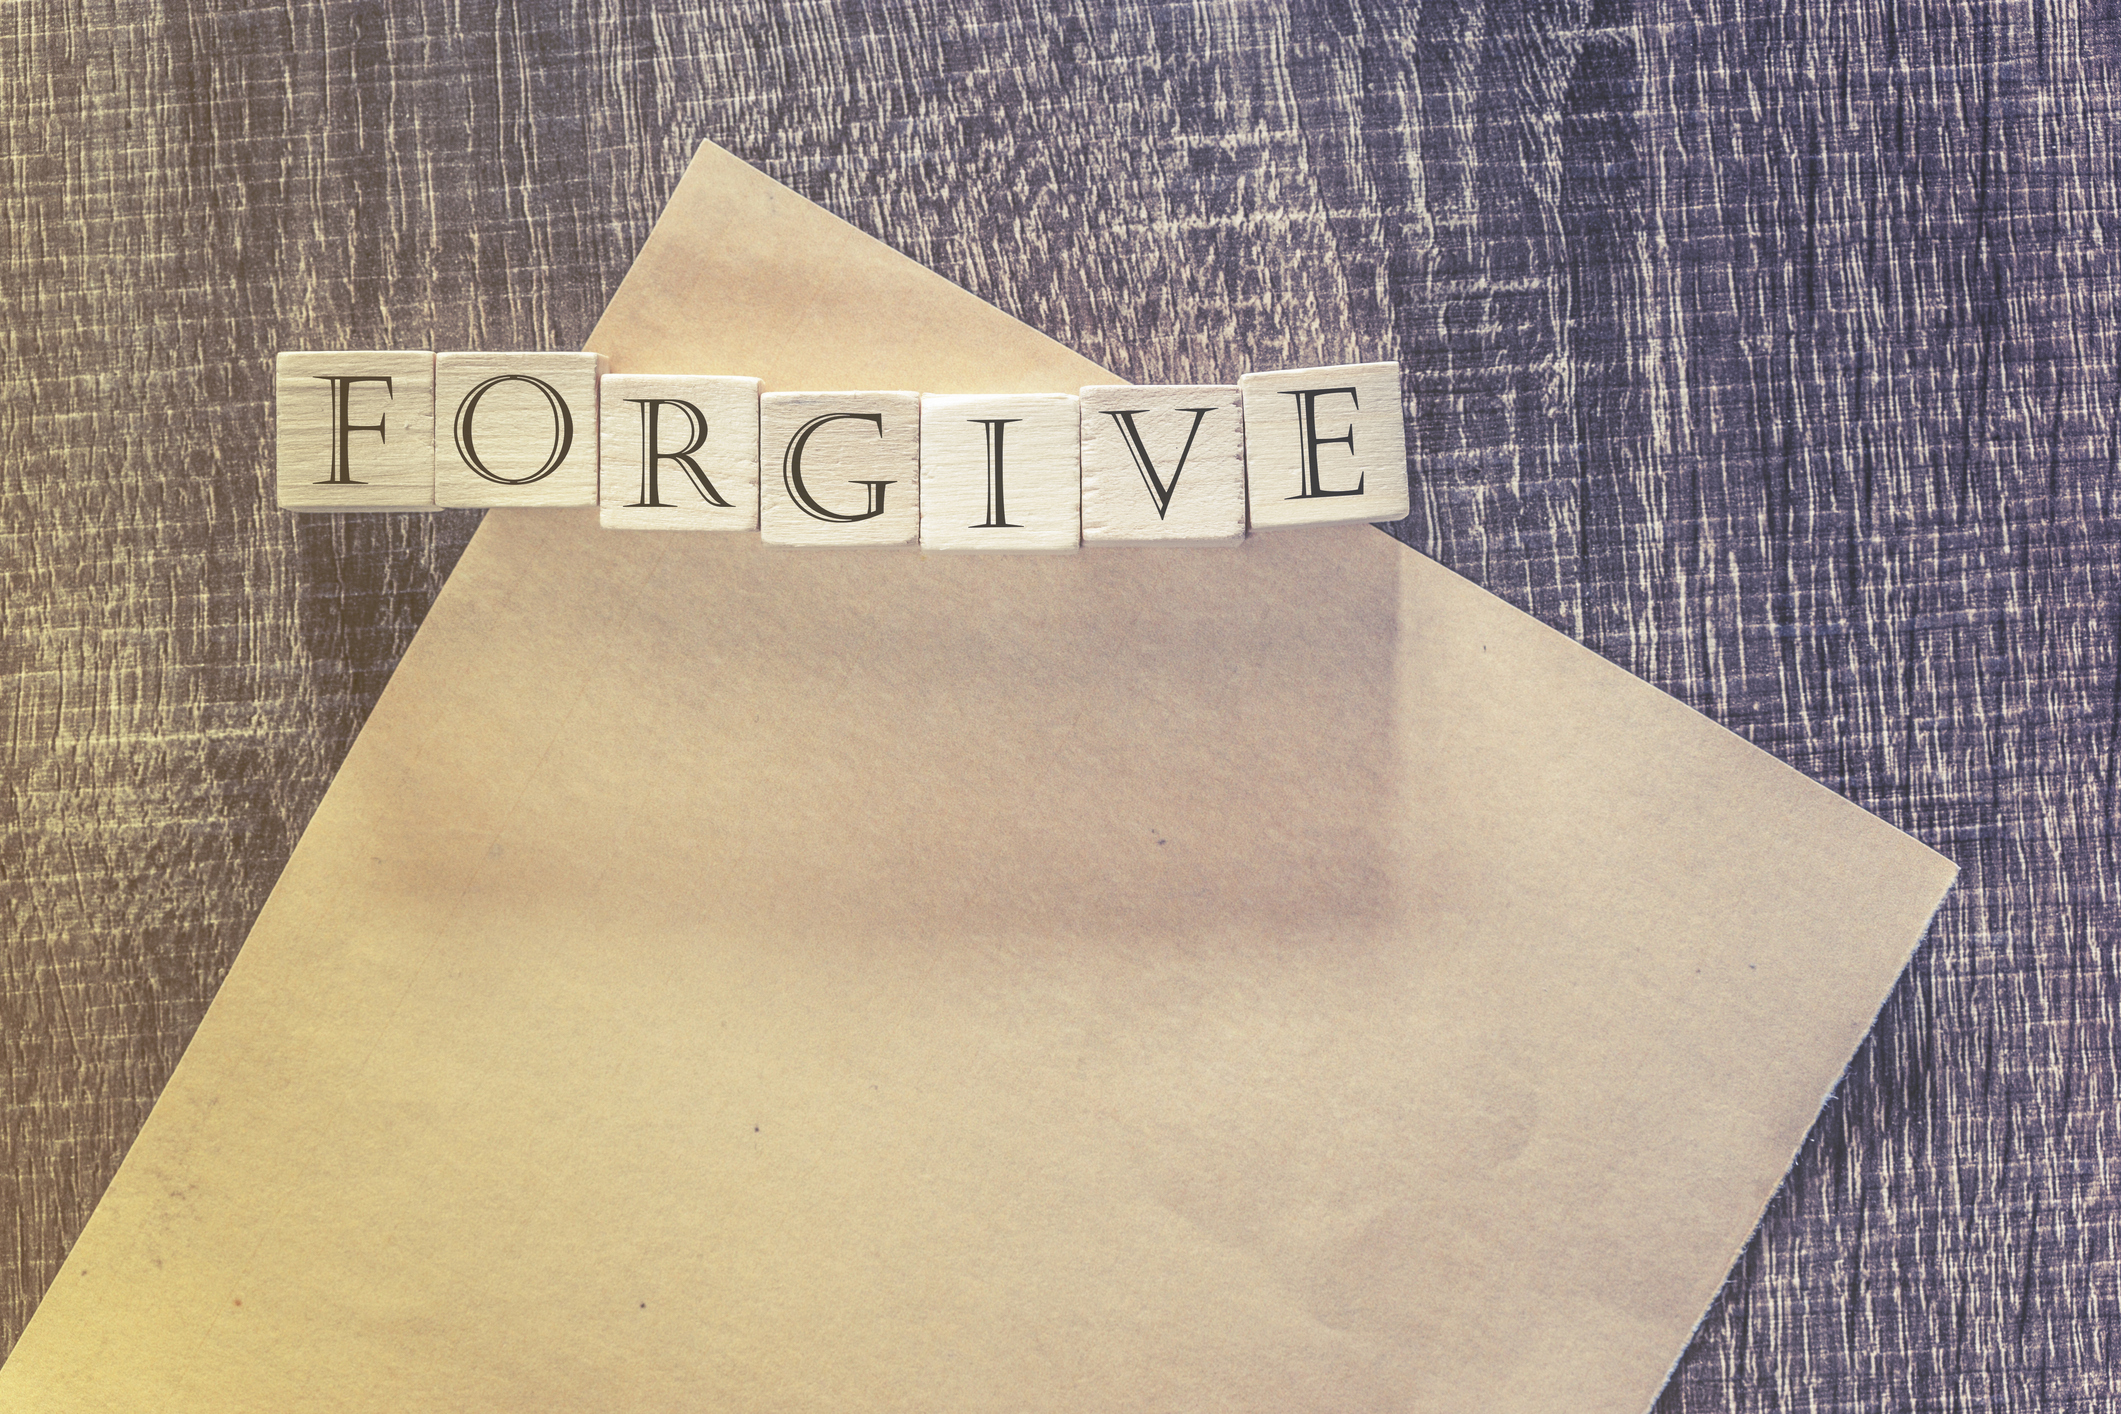 Forgiveness concept. Wooden blocks forming Forgive word on top of a blank paper. Cross processed image for vintage feeling